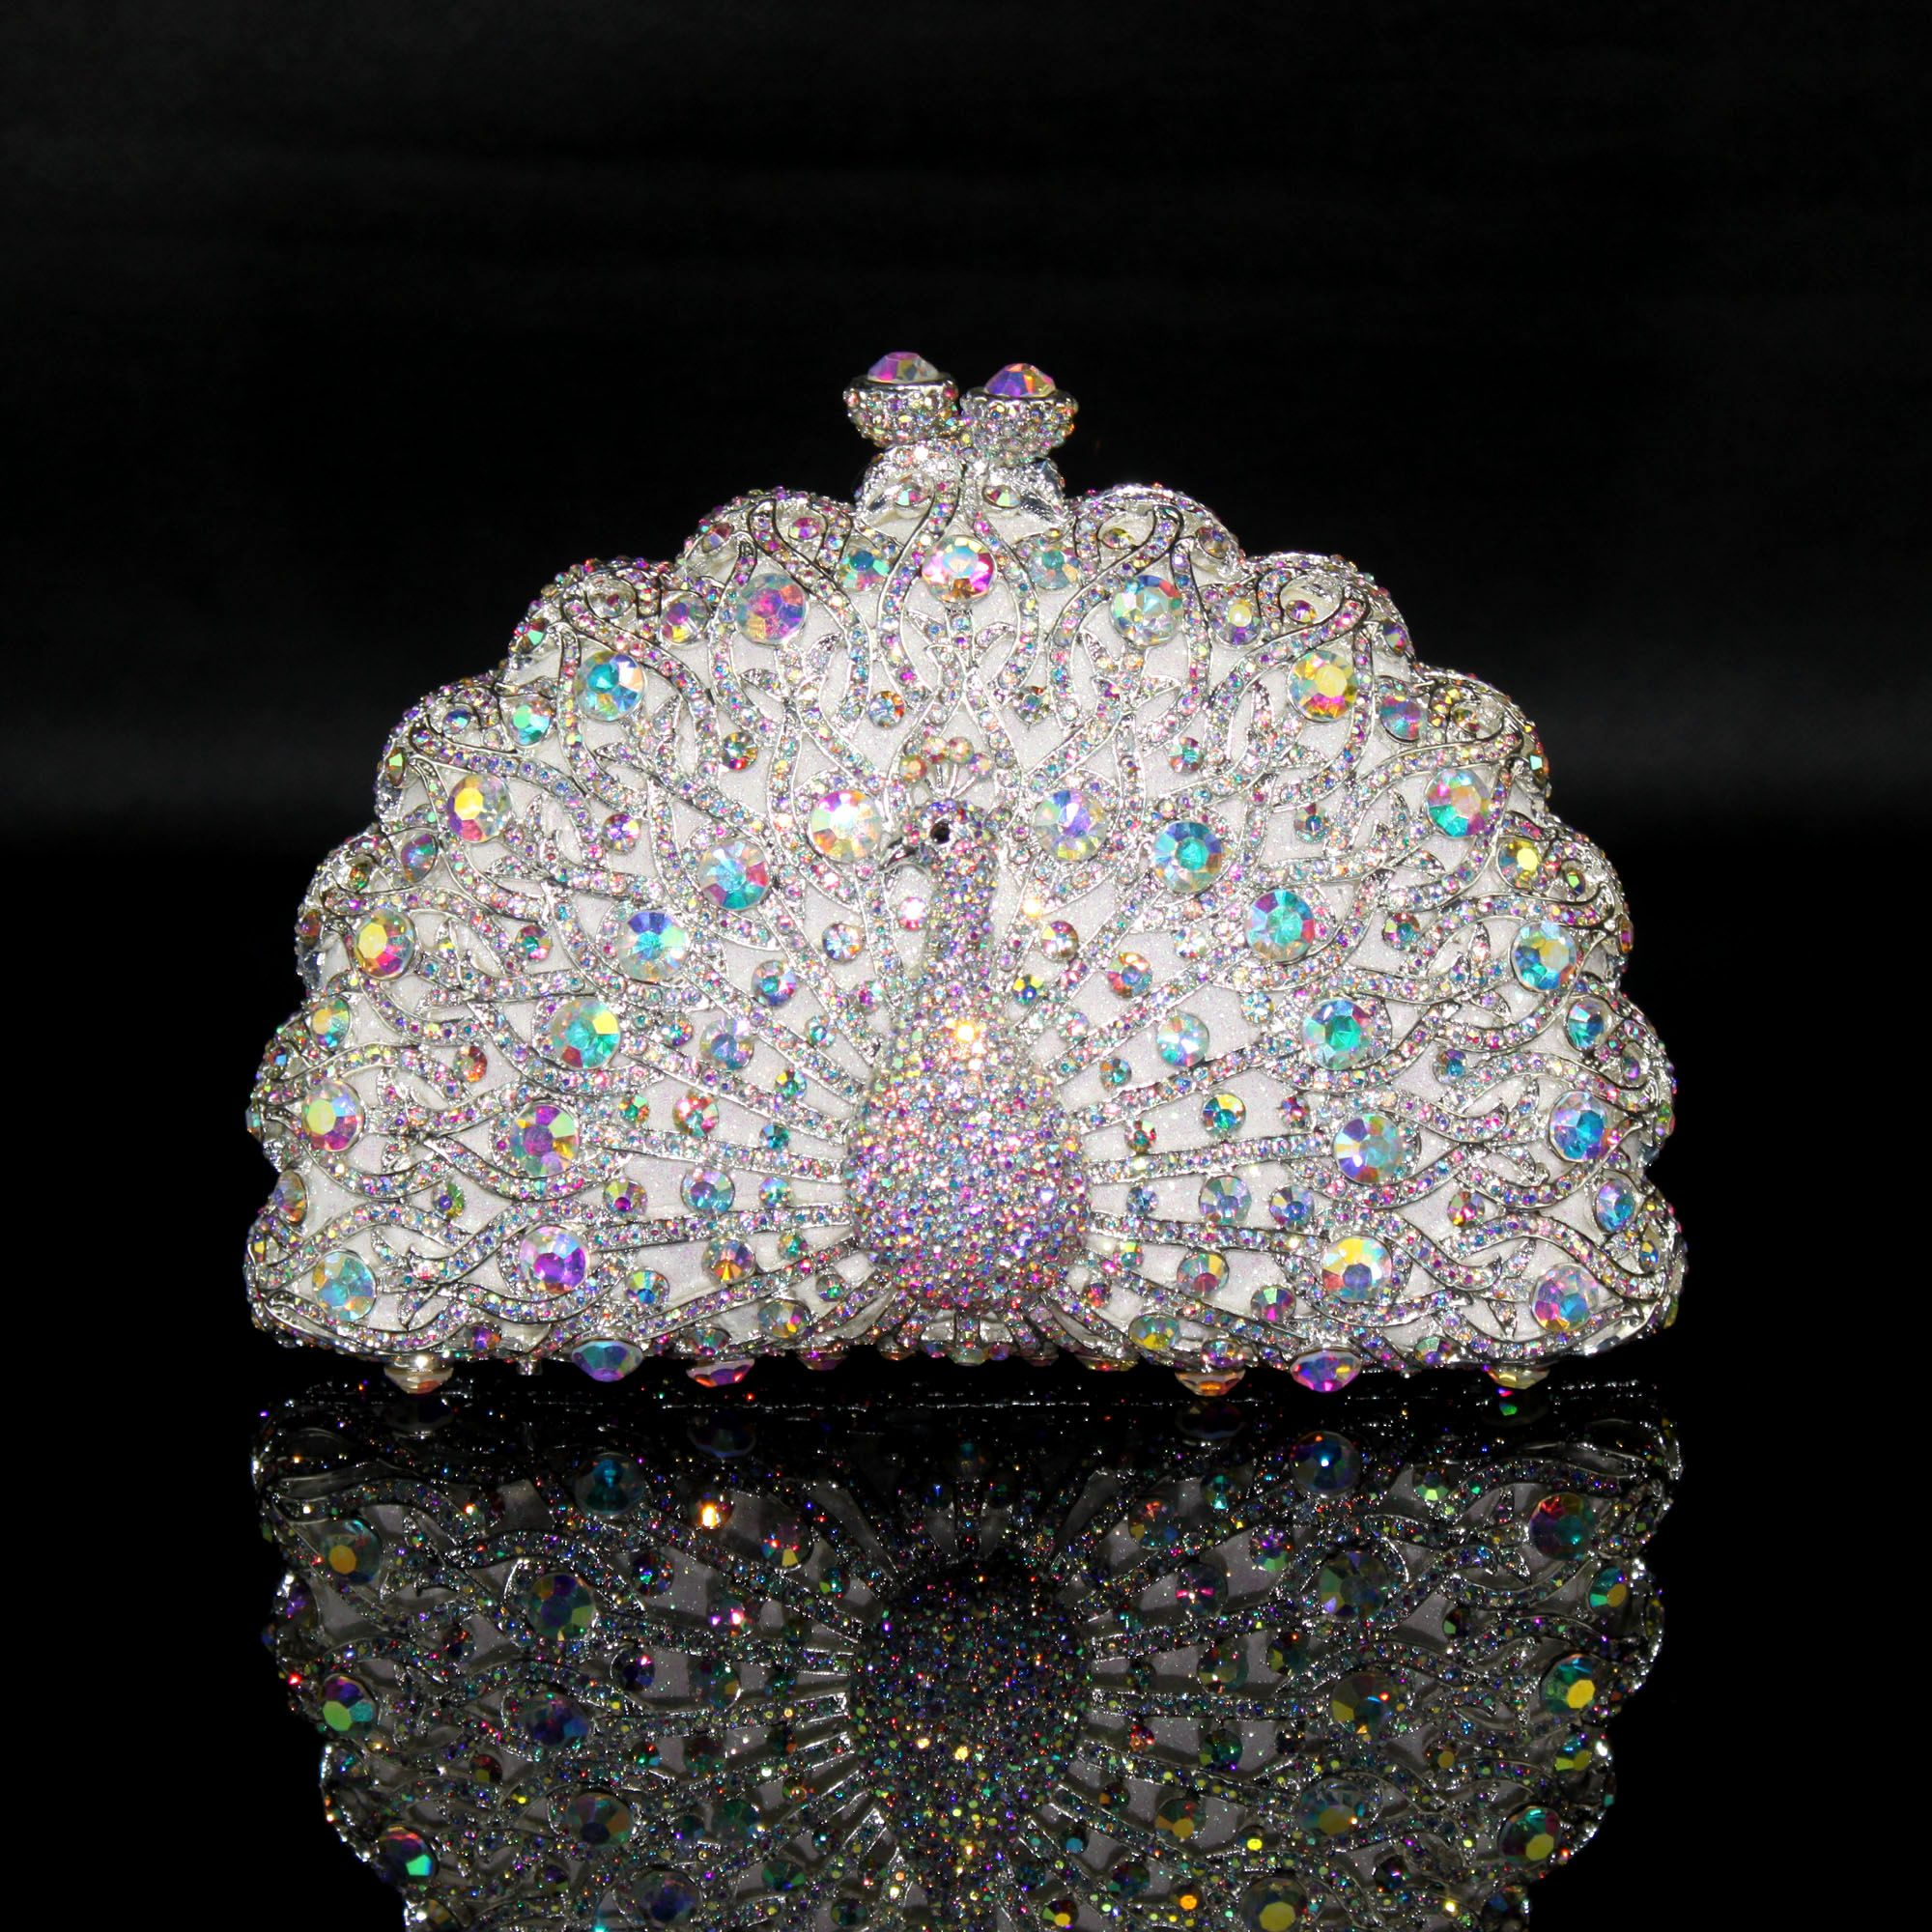 Sparkly Bling Bling Silver Clutch Bags Beading Rhinestone Handmade  Leather Wedding Cocktail Party Evening Party Accessories 2019